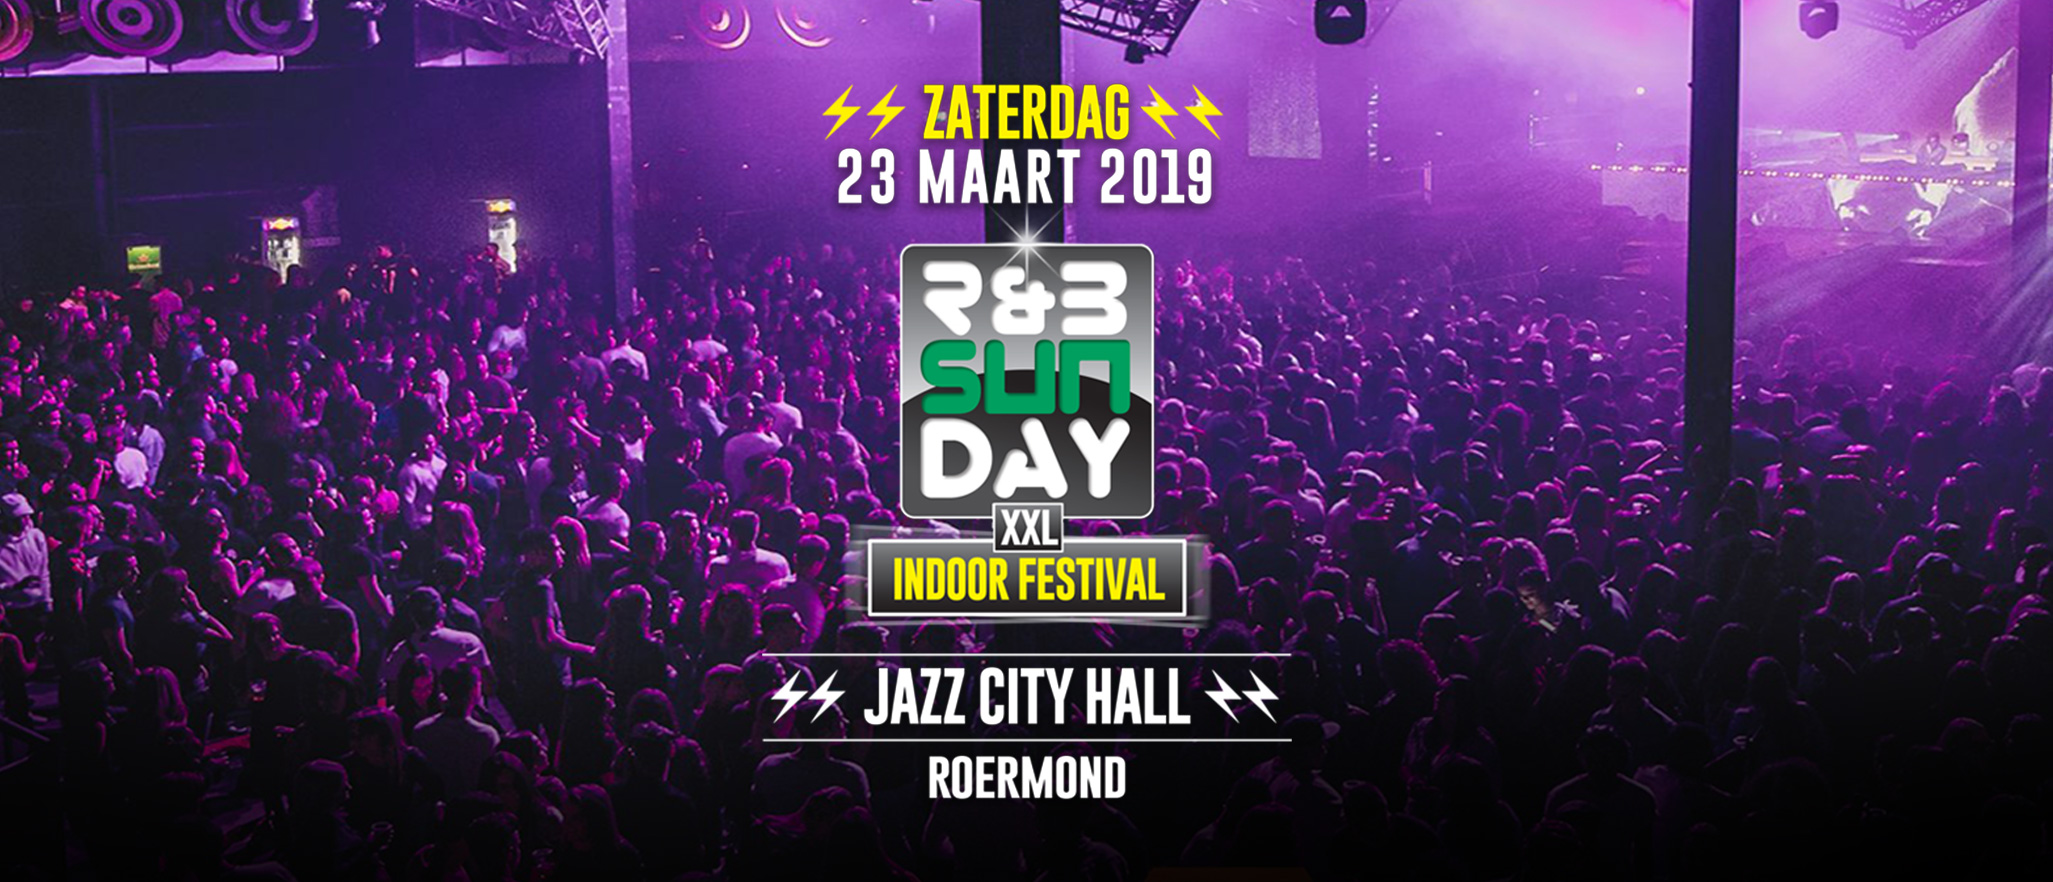 R&B Sunday XXL | Indoor Dagfestival Roermond